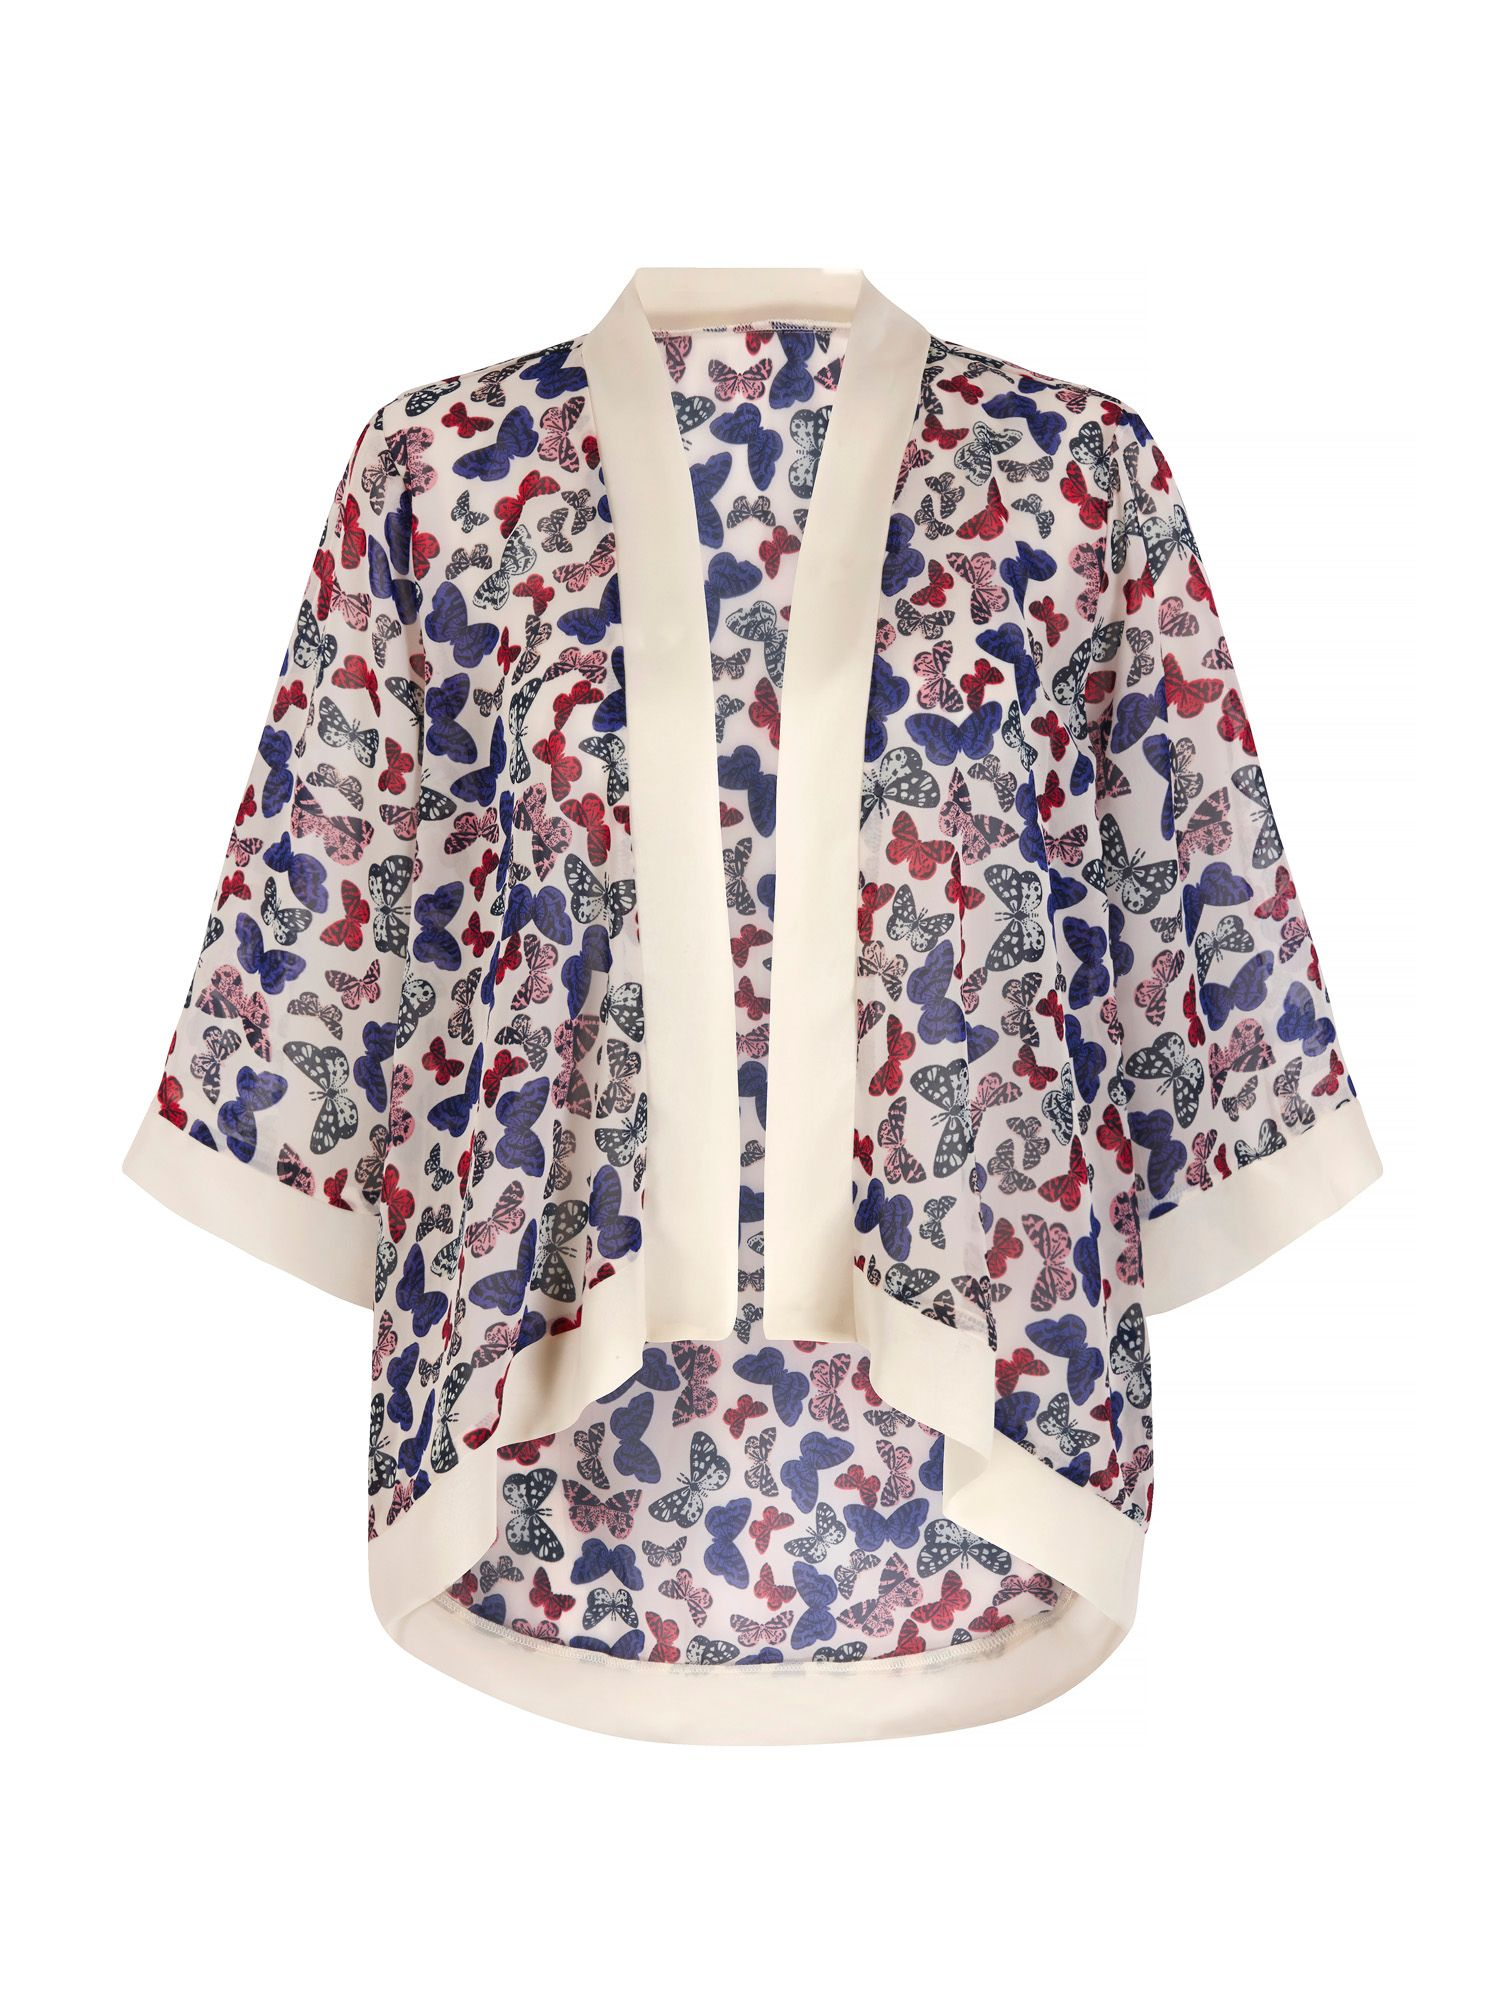 Flowy, versatile and easy to wear, a kimono is an effortless must-have for a Apparel, Home & More· New Events Every Day· Hurry, Limited Inventory· New Deals Every Day57,+ followers on Twitter.